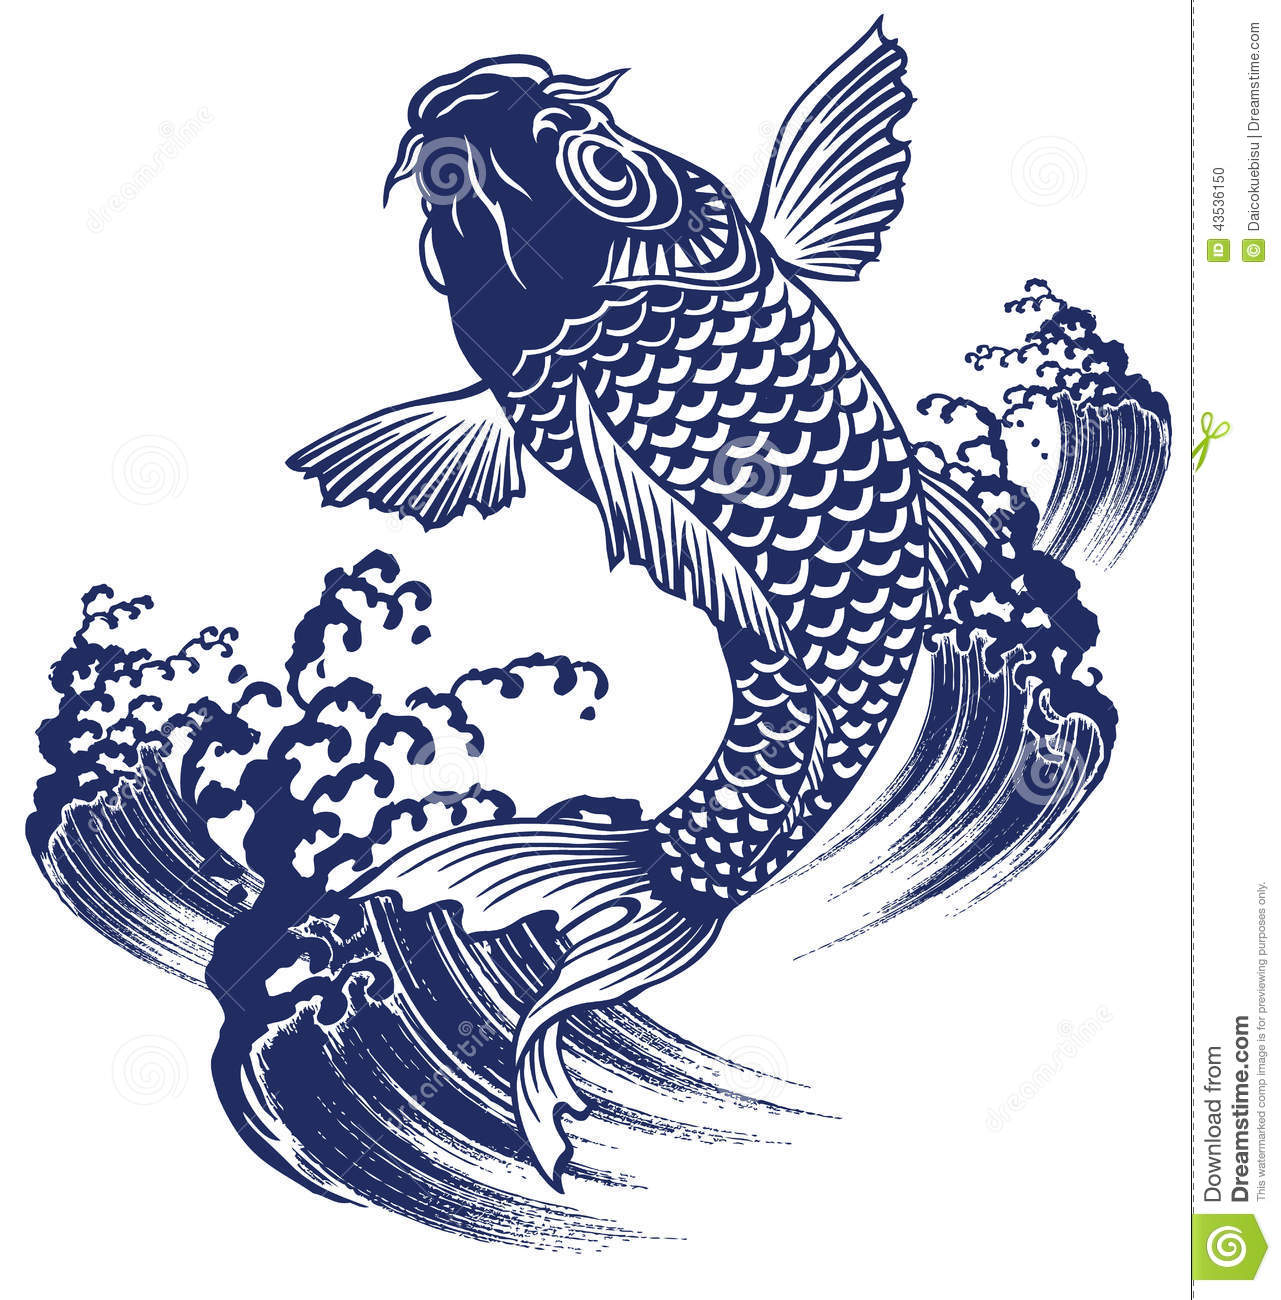 Japanese Carp Stock Vector - Image: 43536150